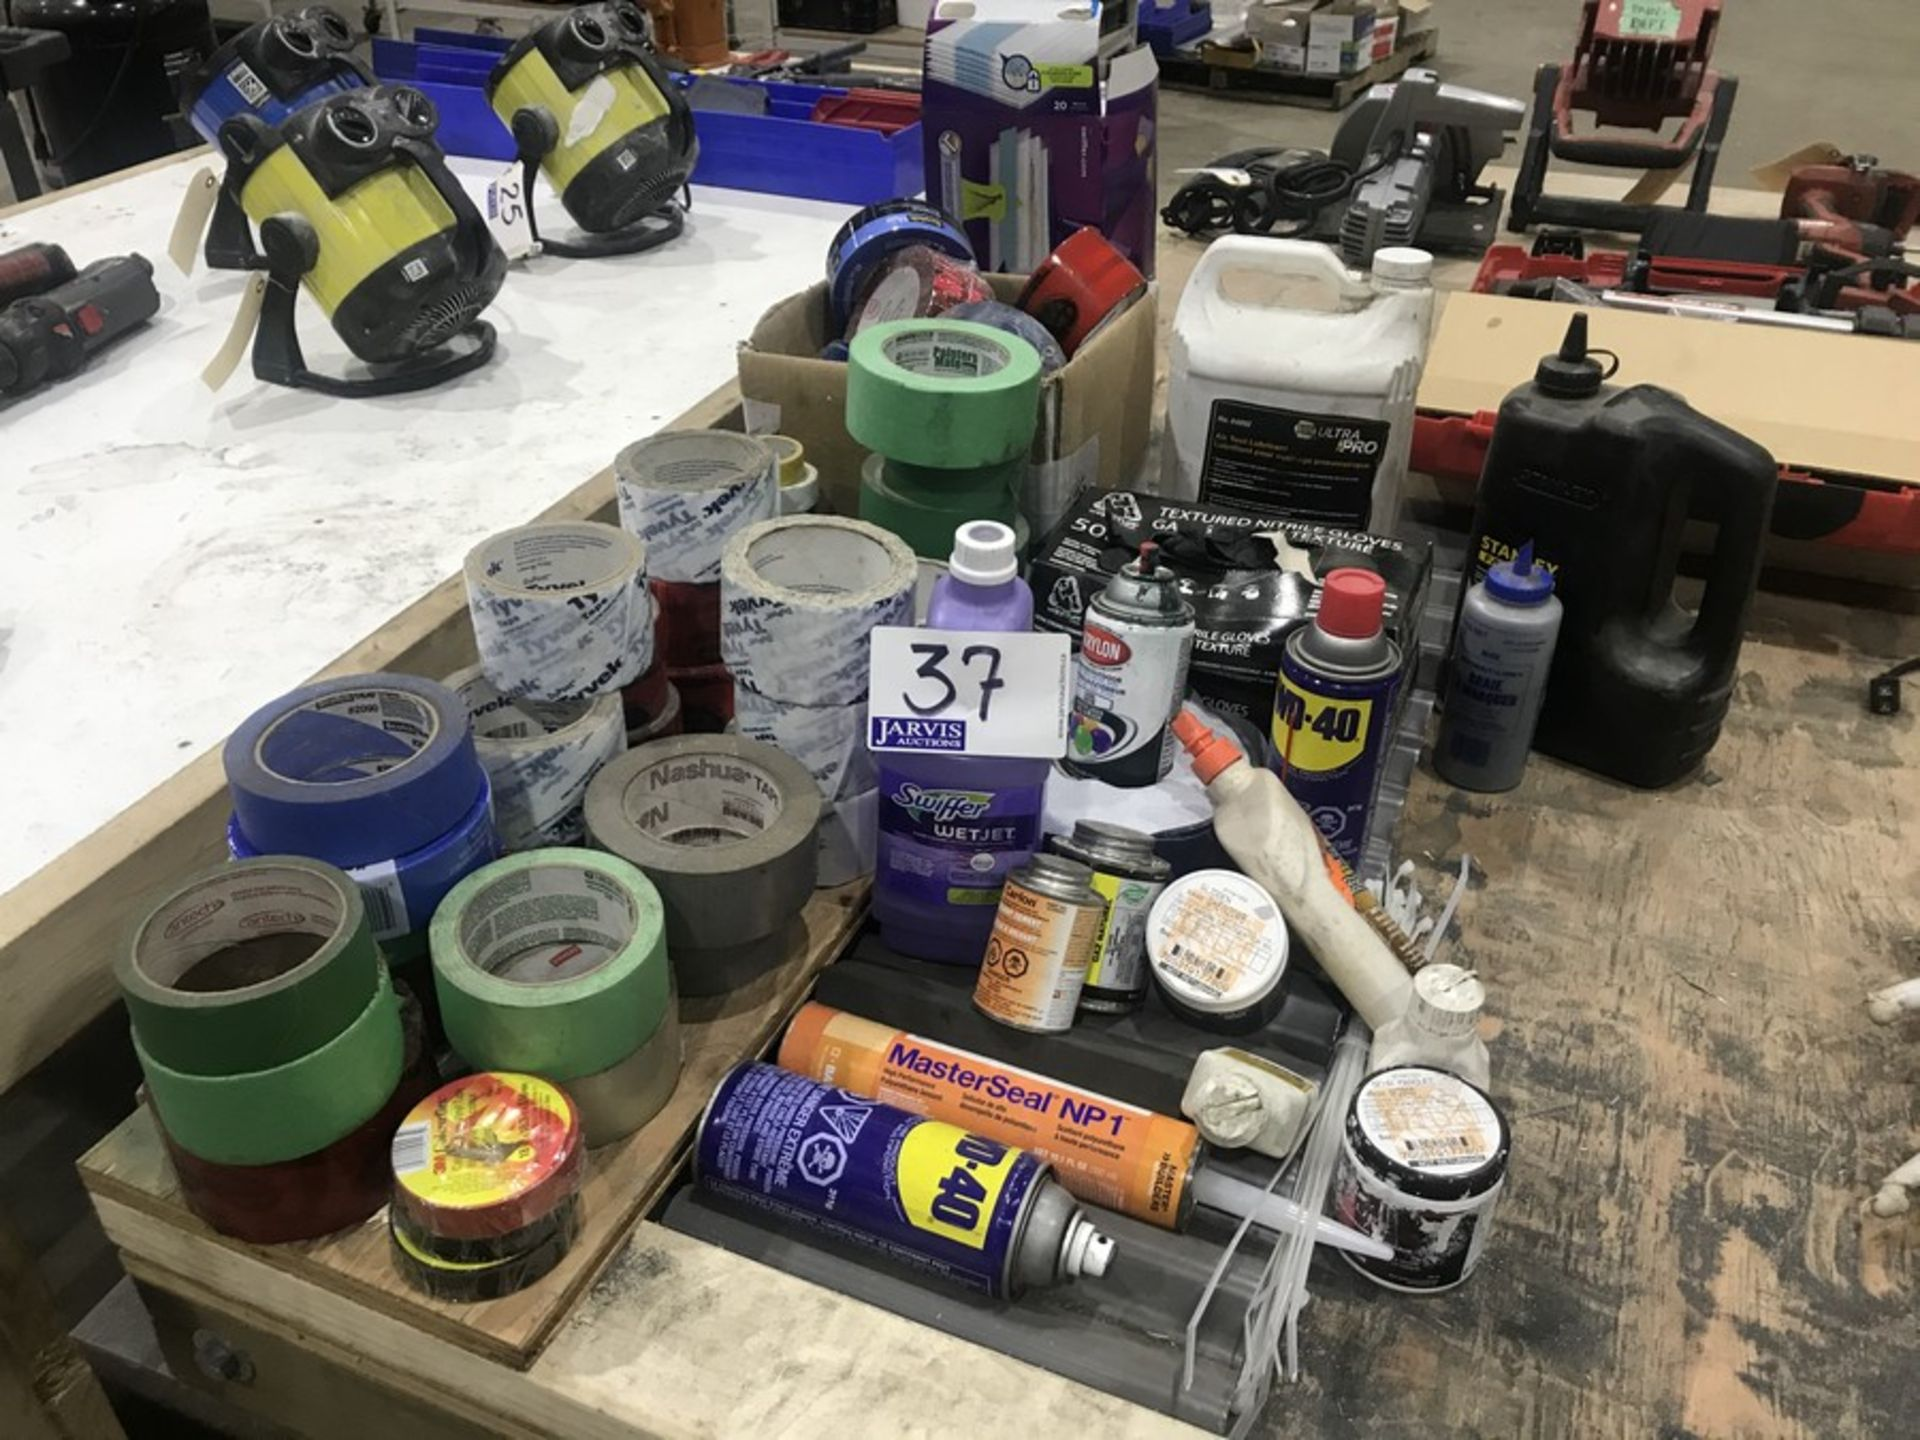 Lot 37 - TAPE & ASSORTED SUPPLIES